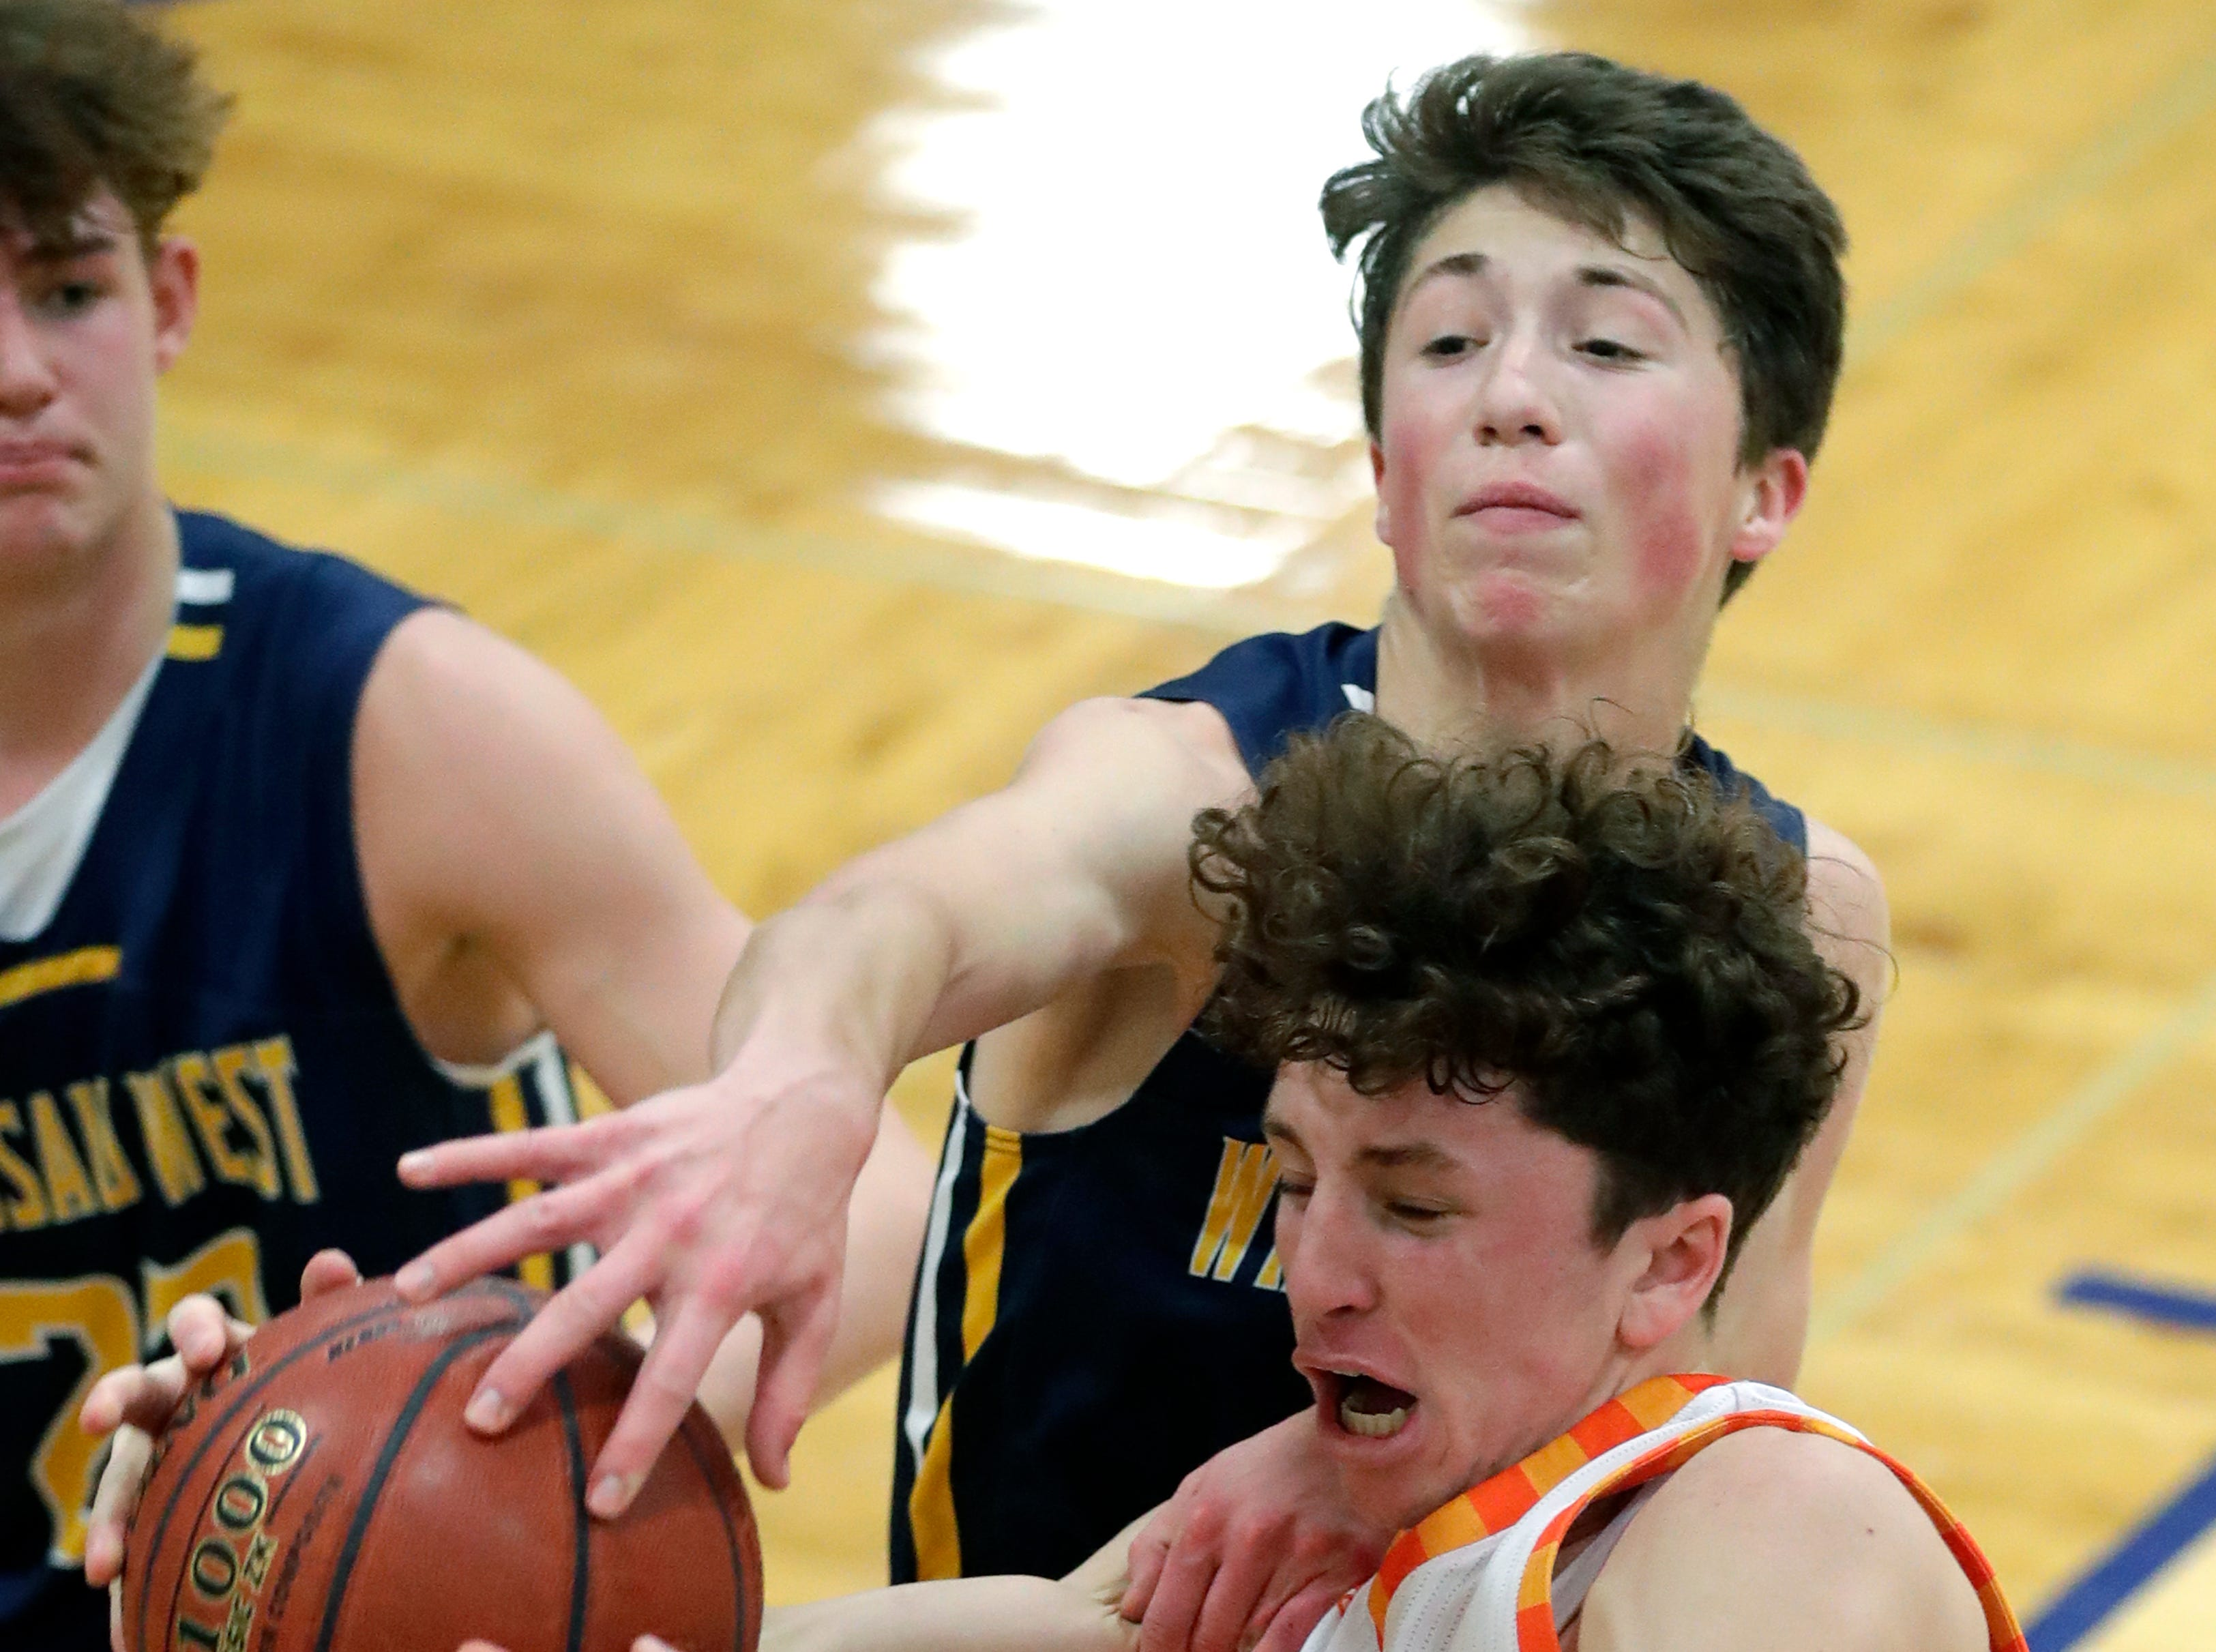 Appleton West  High School's Will Mahoney (21) is fouled as he puts up a shot against Wausau West High School's Tim Deloye (11) during their boys basketball game Friday, December 28, 2018, in Appleton, Wis. 